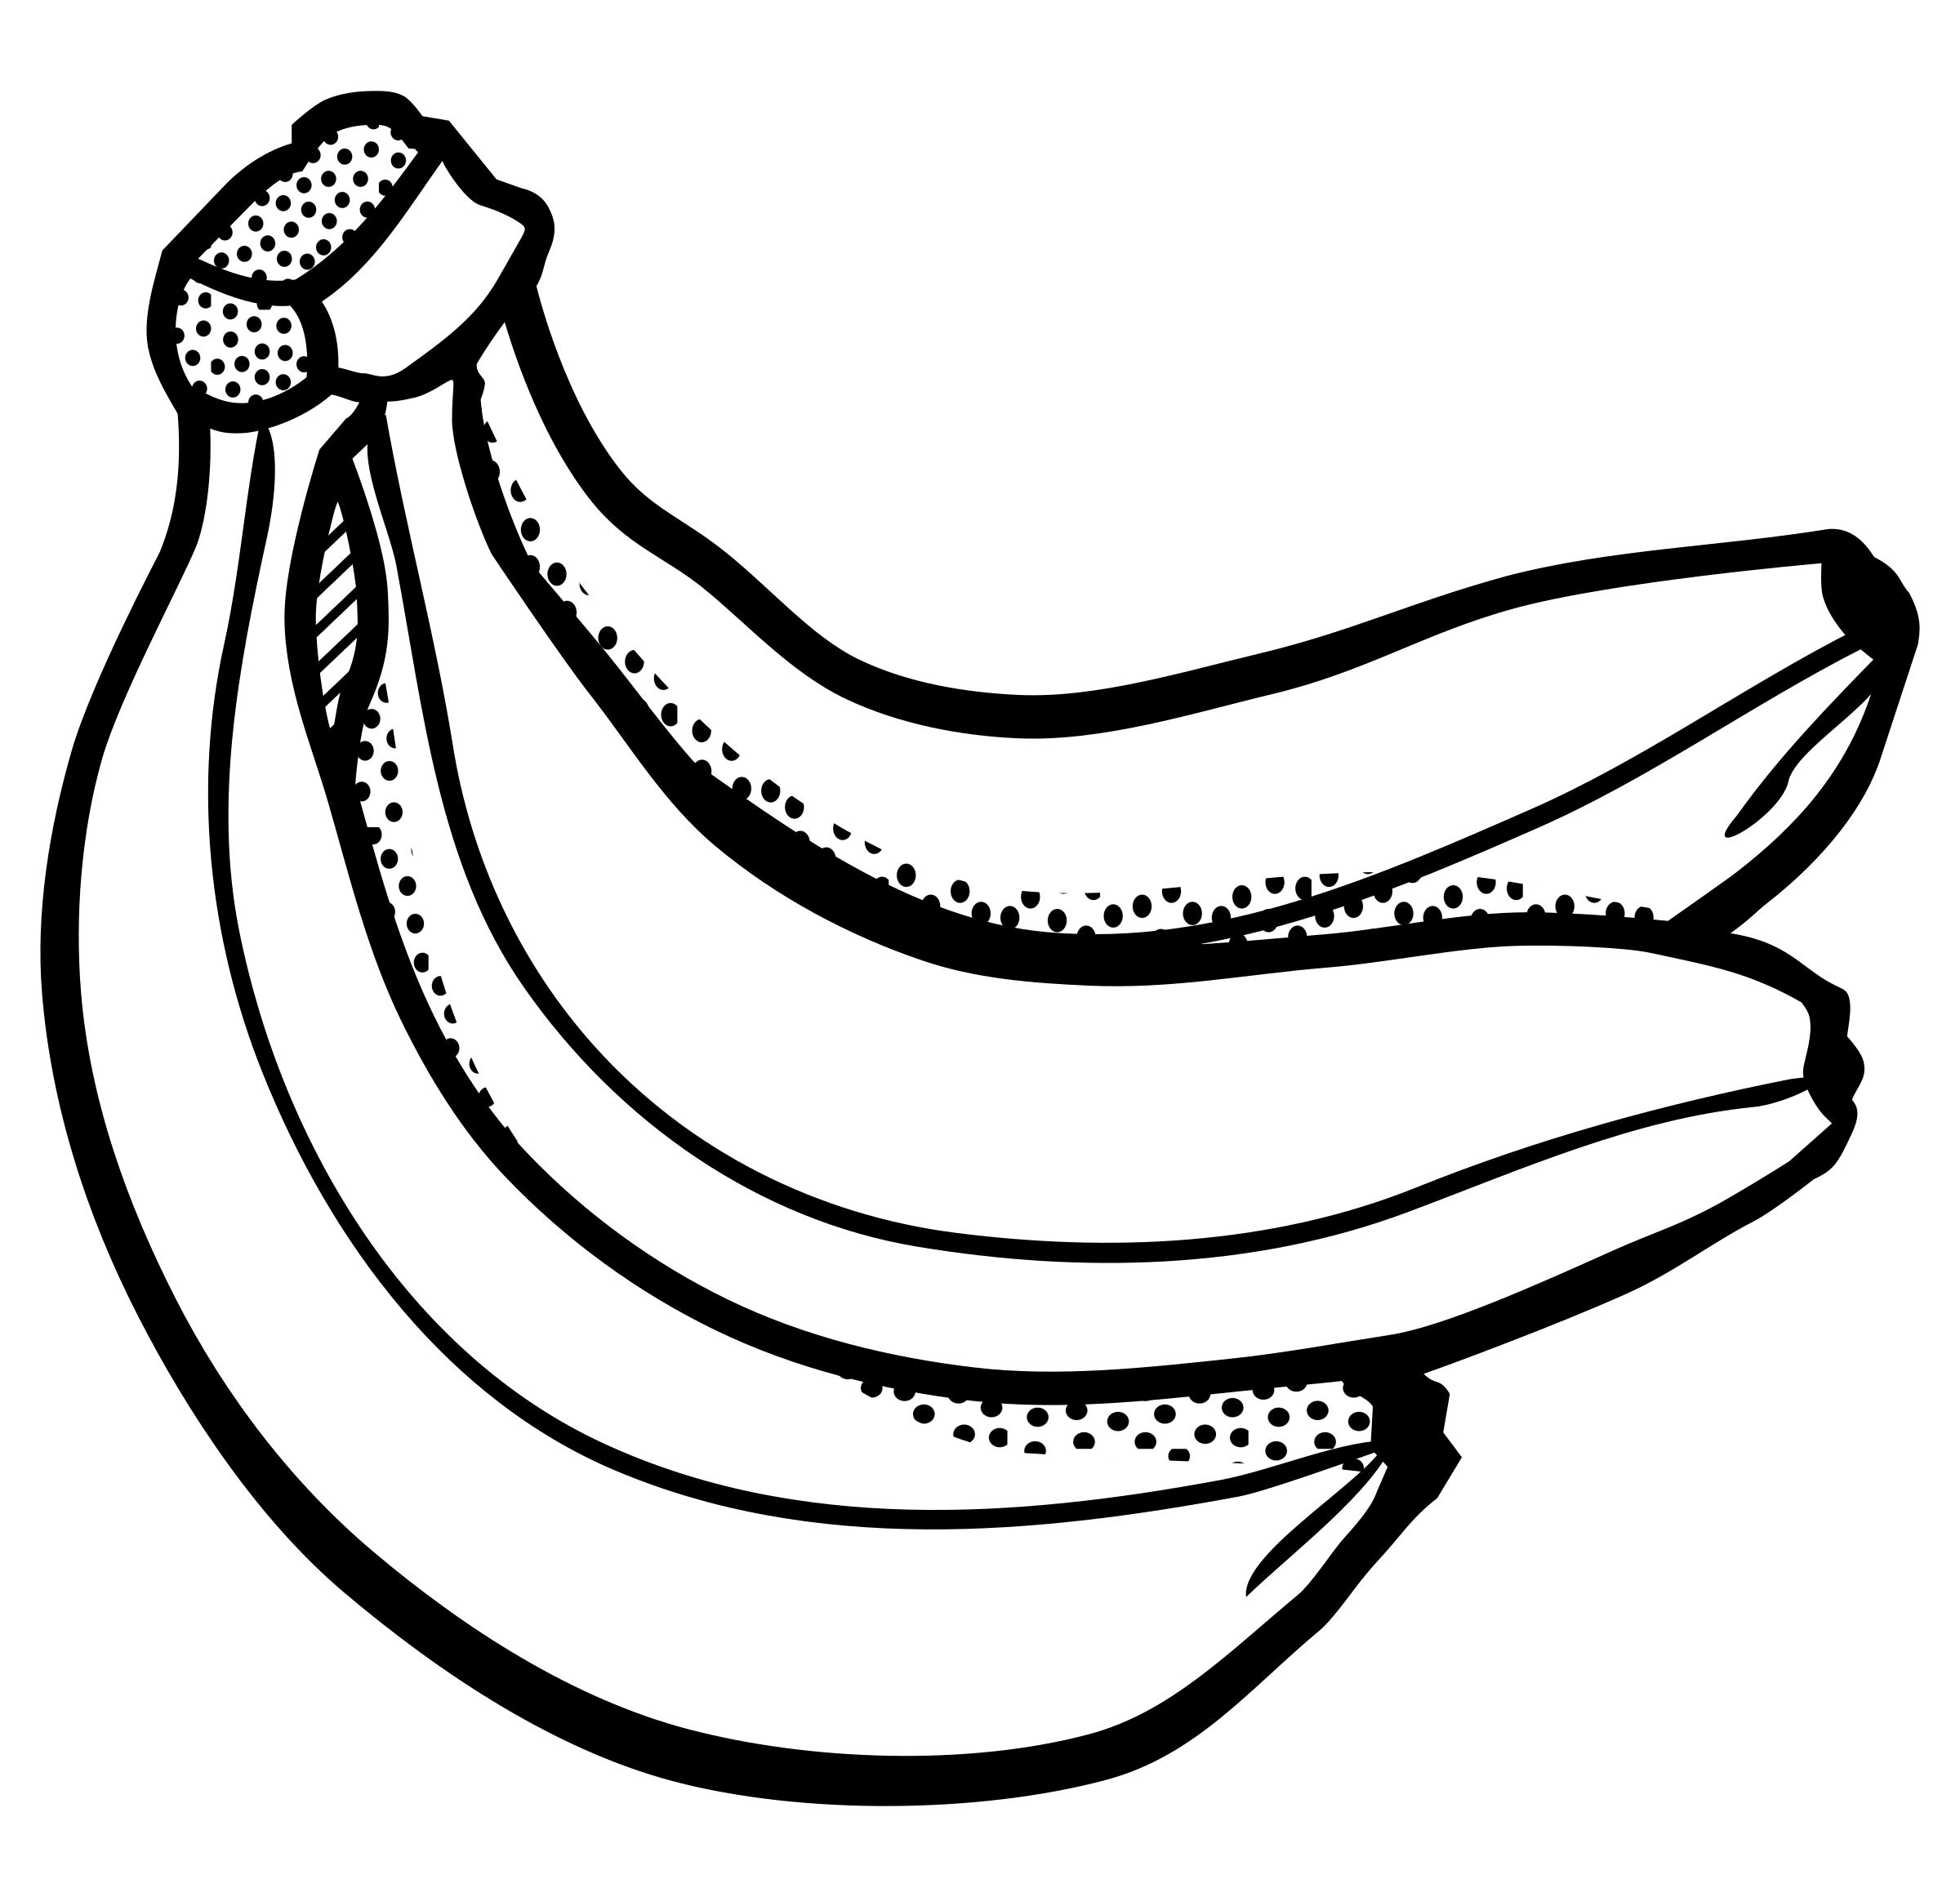 Banana clipart line art, Banana line art Transparent FREE.